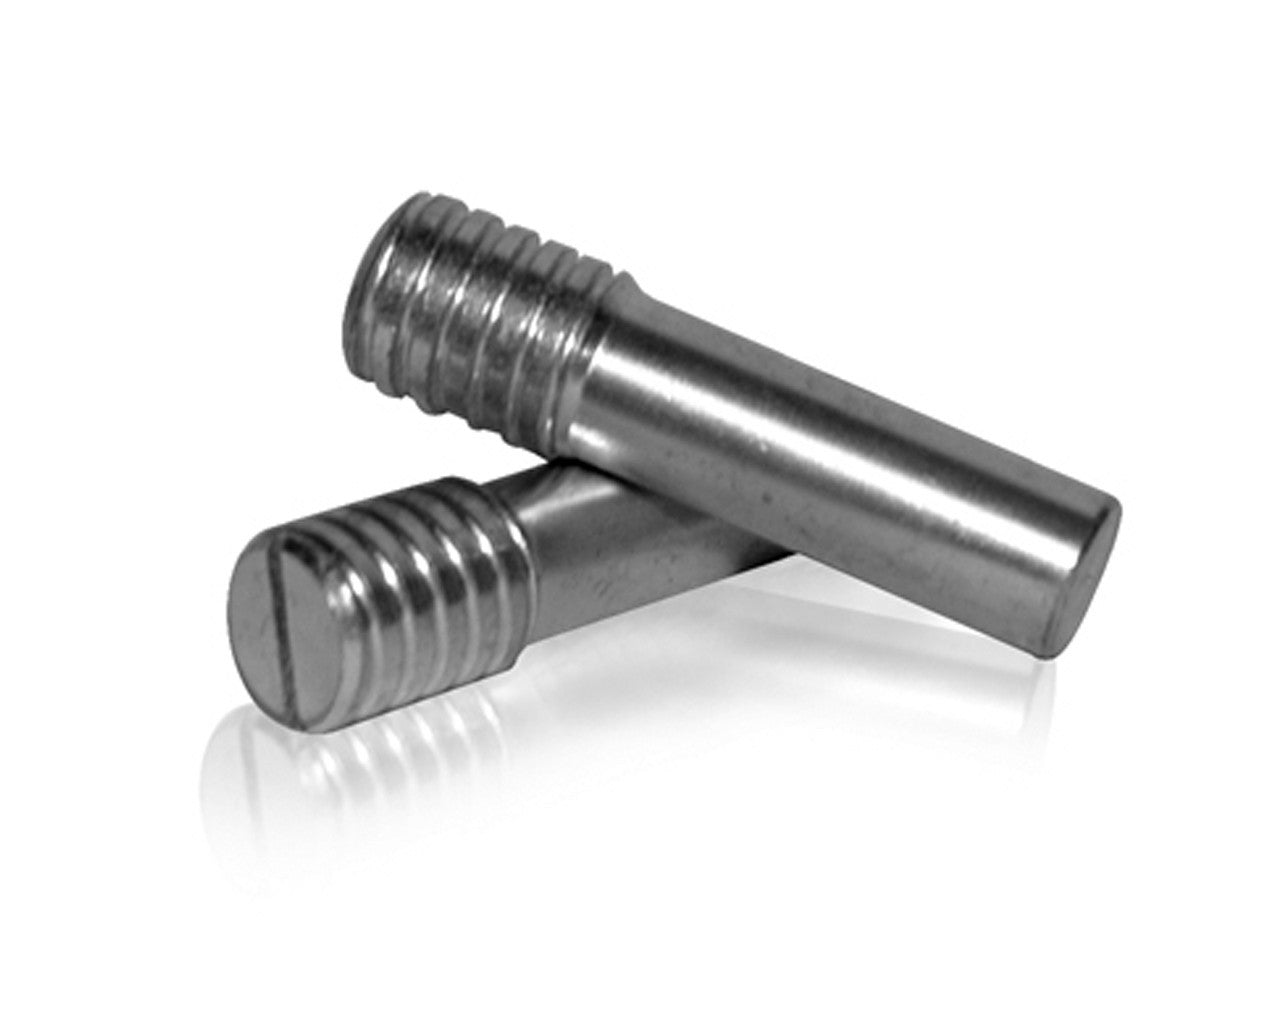 Excellerator Threaded Weights